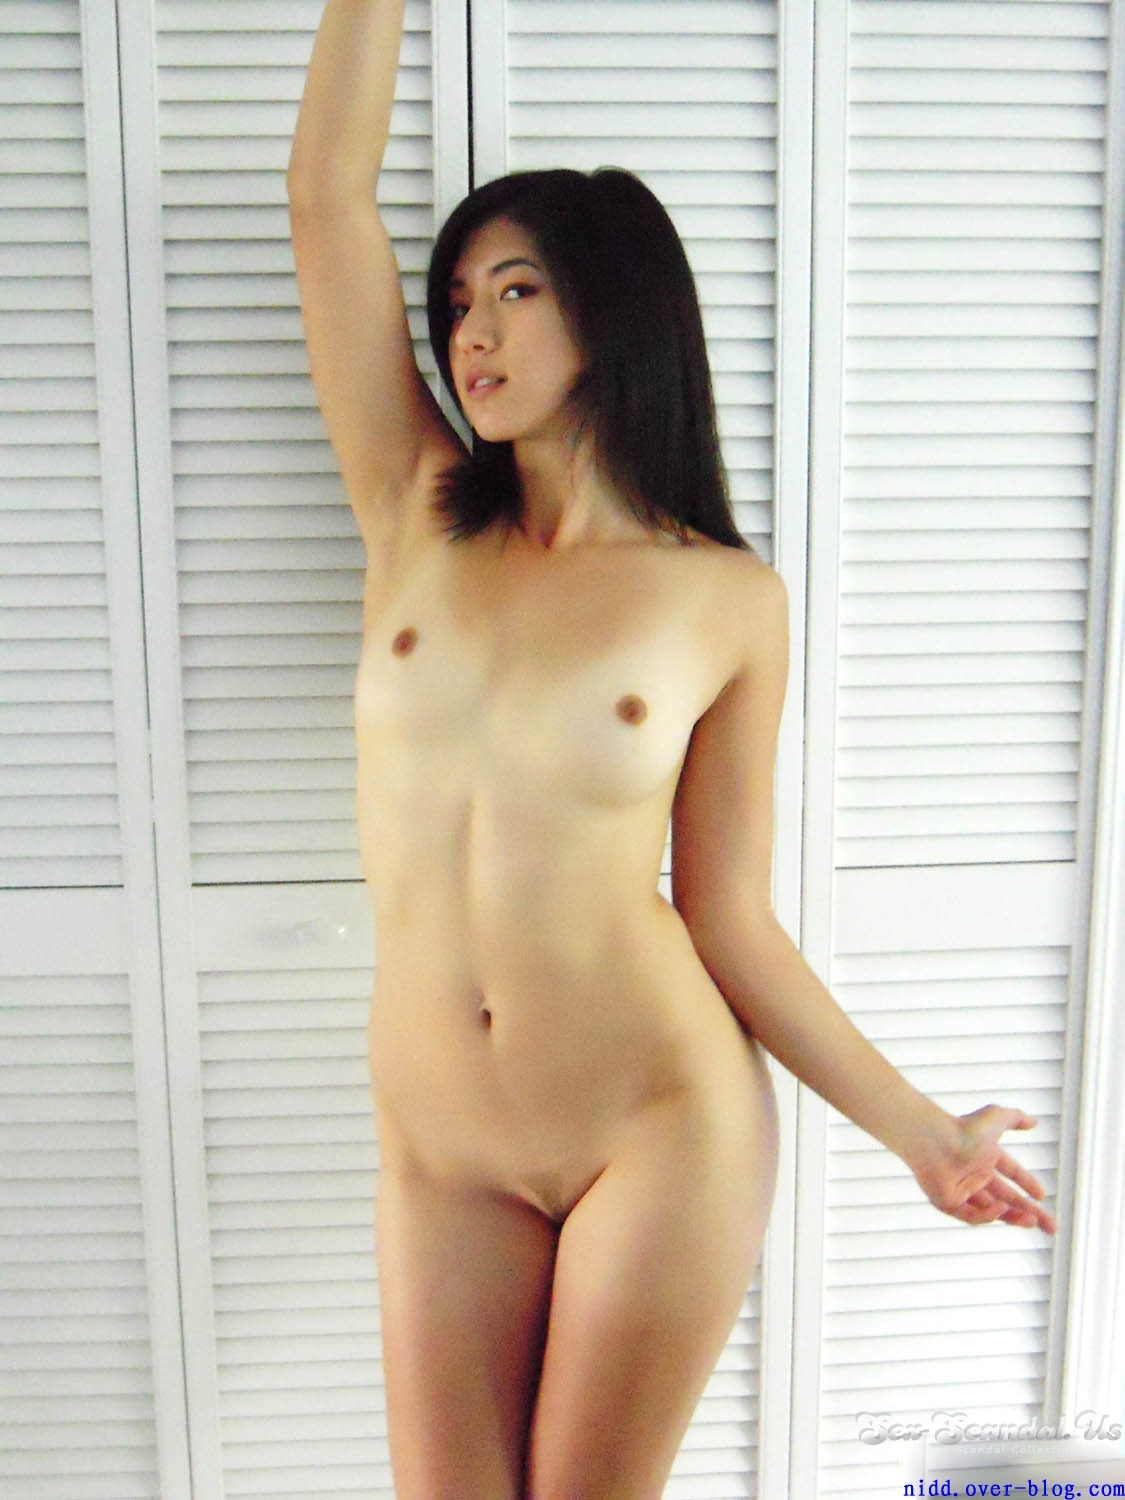 xxx she is sexy girl